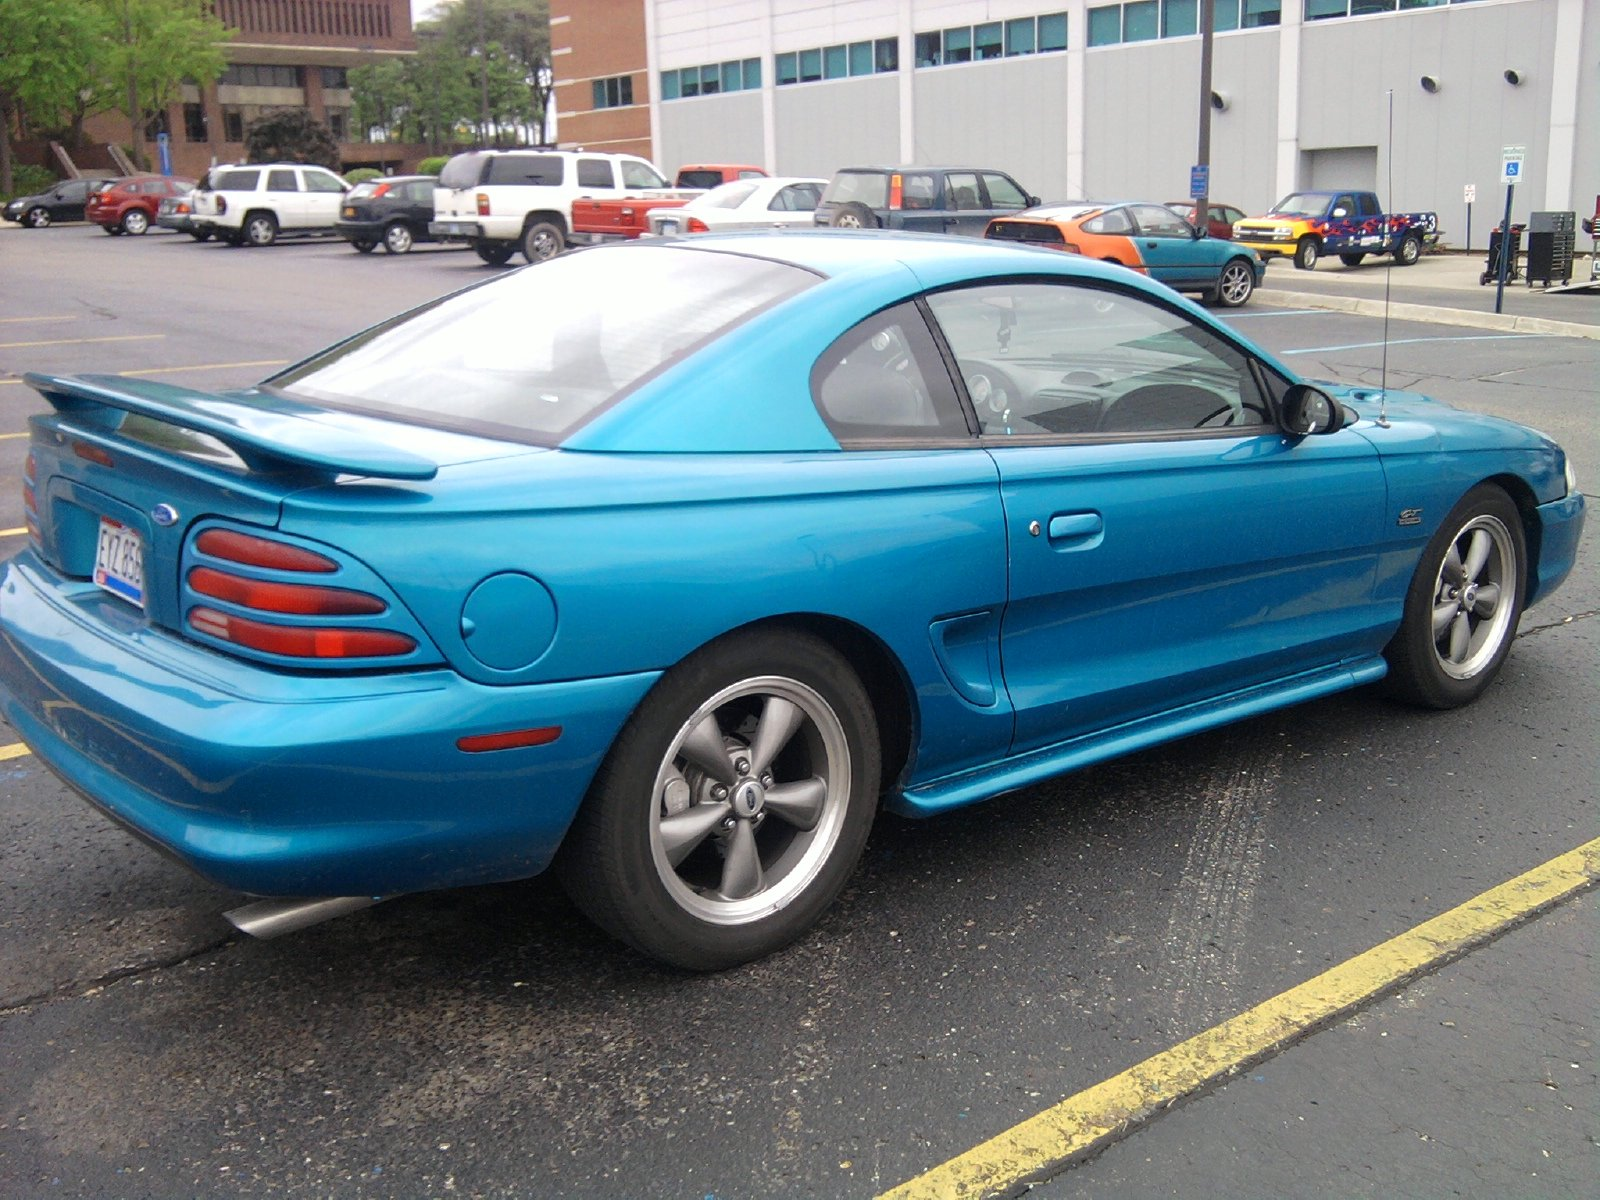 Gt's 2 Happened 5 Ford Sn95 The Nice P��gina 0 All What To -